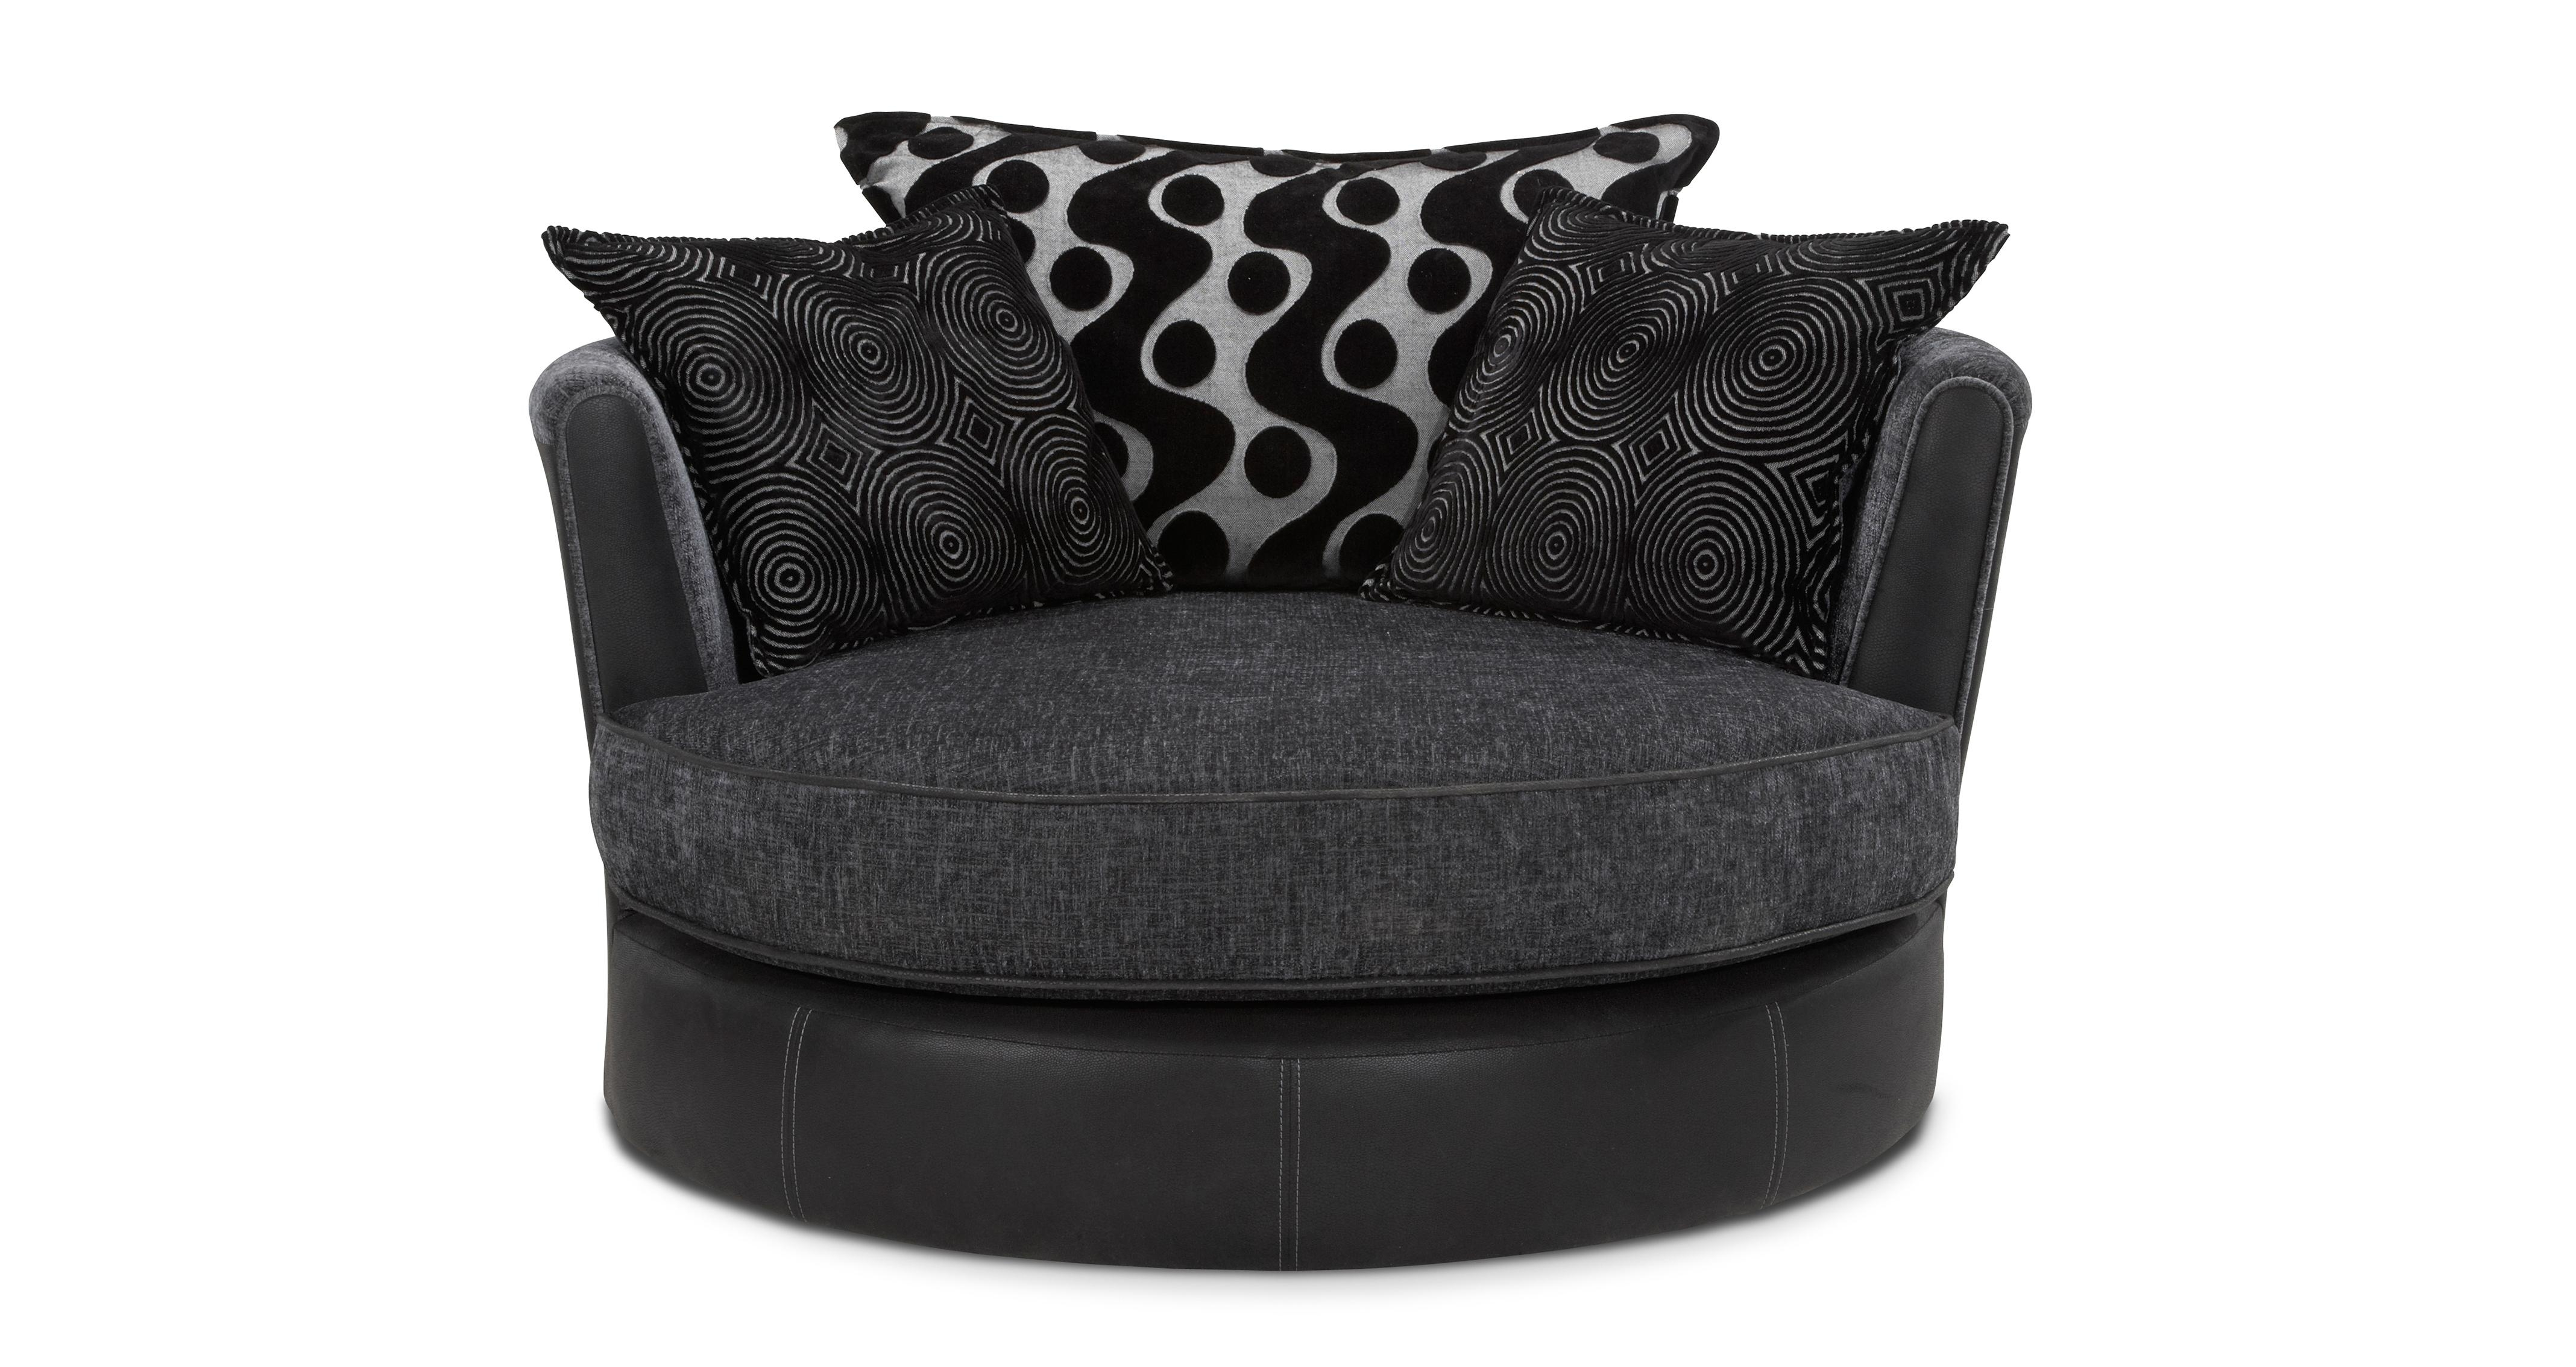 56 Swivel Sofa Chair Seater Sofa And Swivel Chair Dfs In Cardiff Throughout Swivel Sofa Chairs (Photo 3 of 15)